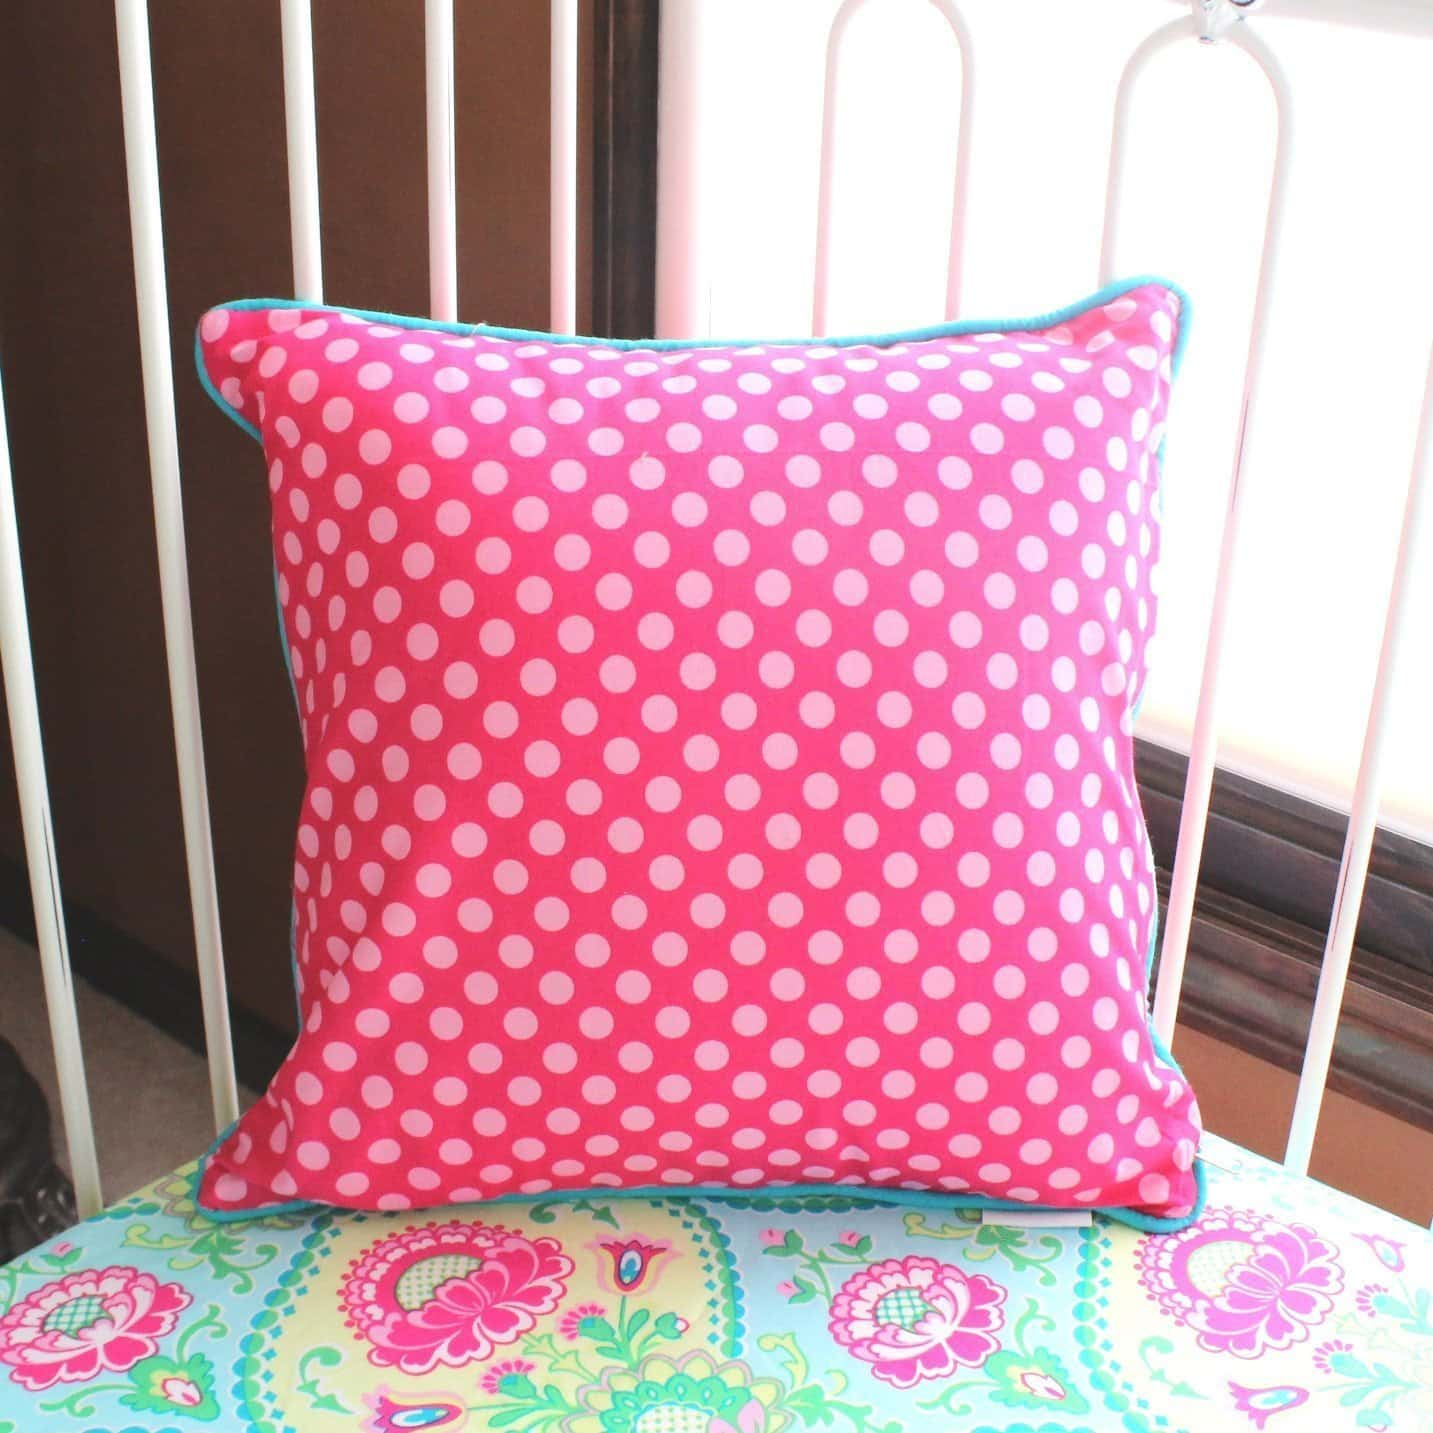 Throw Pillow Cover And Insert : Throw Pillow Cover and Insert Confection Dots ? Jack and Jill Boutique